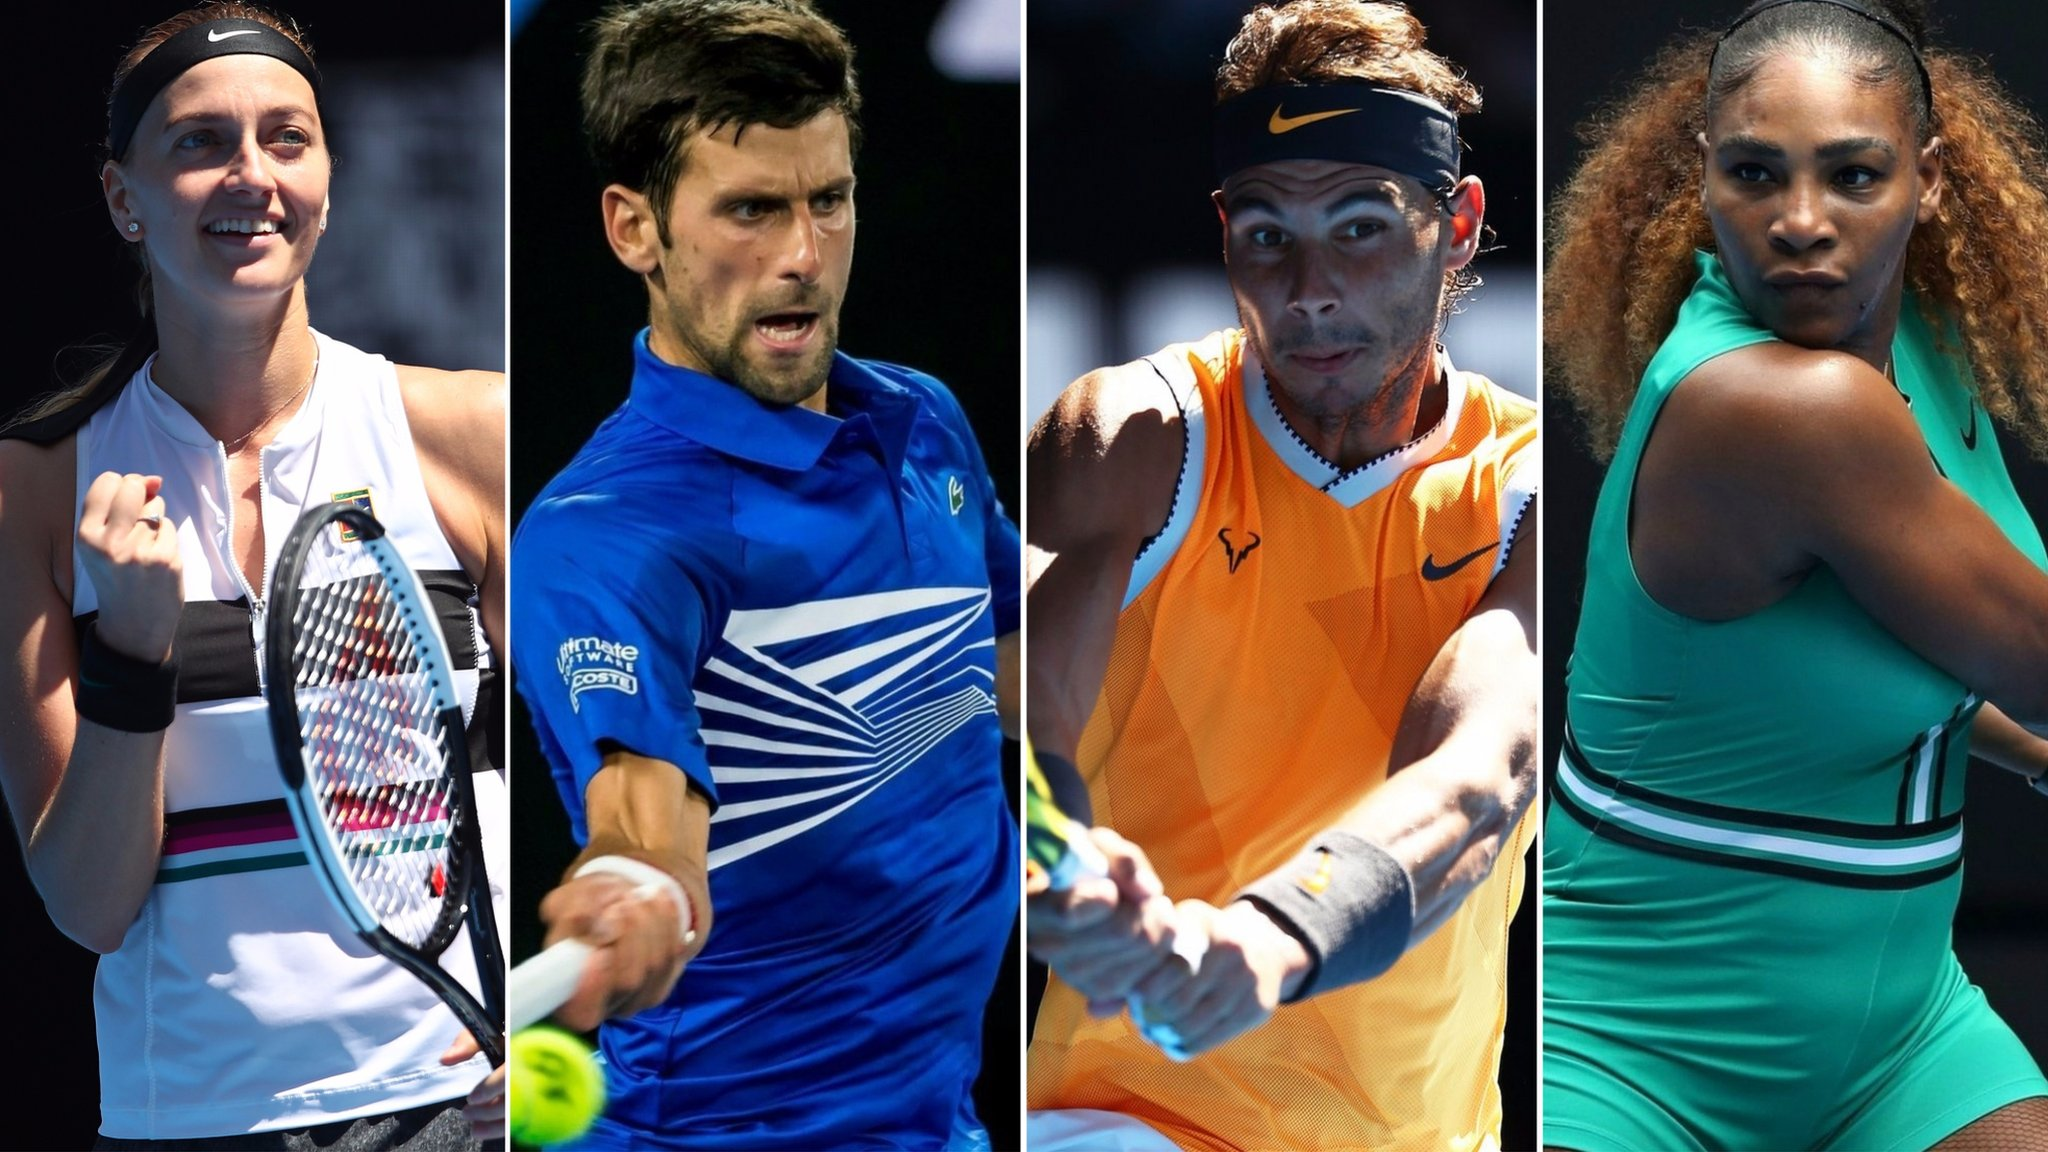 Australian Open: BBC TV & radio coverage details